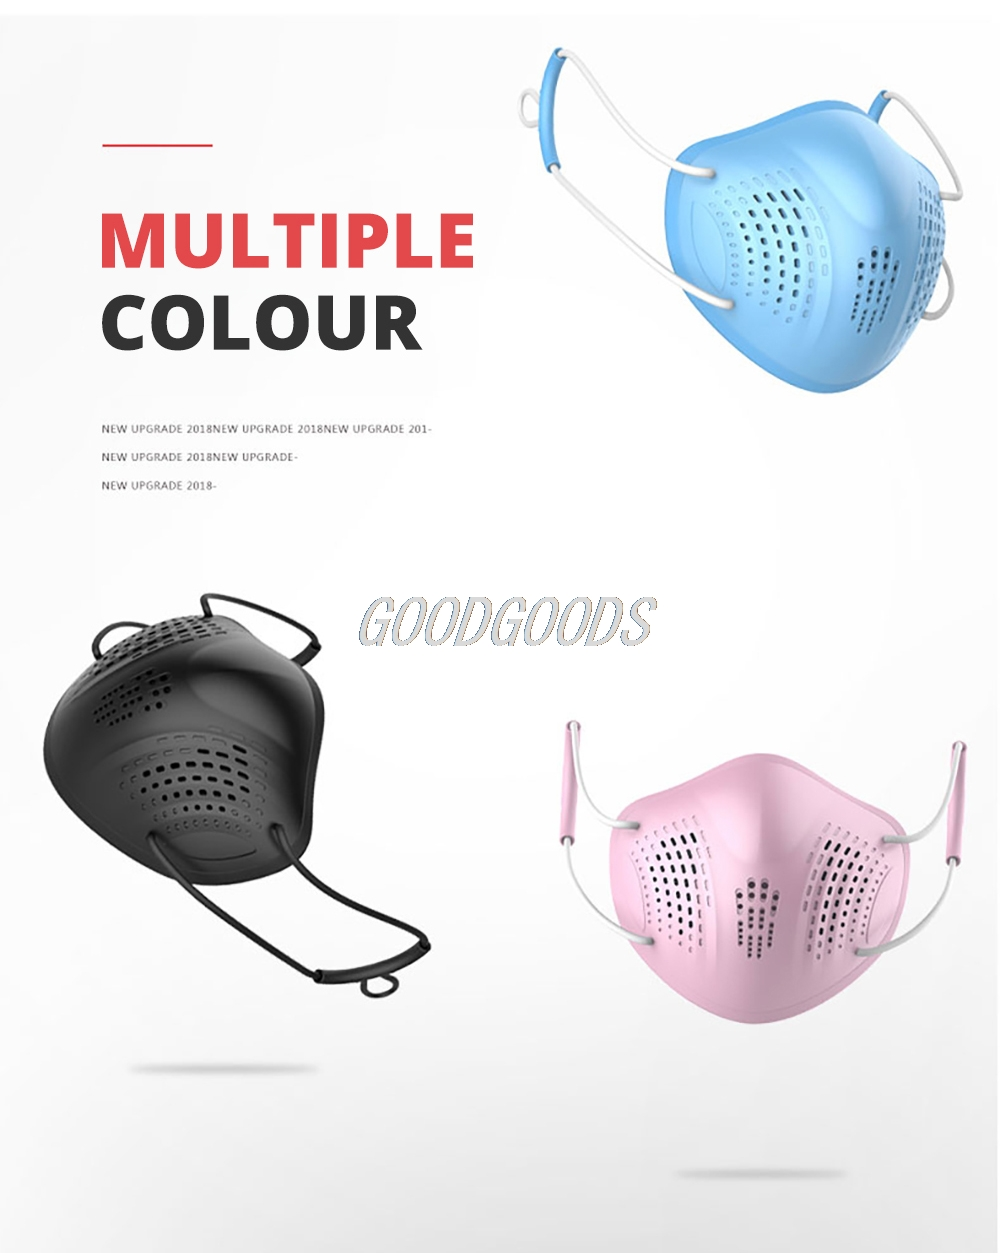 Hef86607a6b9f43b7aea3d8c012b19ff0K Silicon Face Mask Dustproof Mask Facial Protective Cover Washable Masks Anti-Dust Bacteria Proof Facemask PM2.5 Pollution